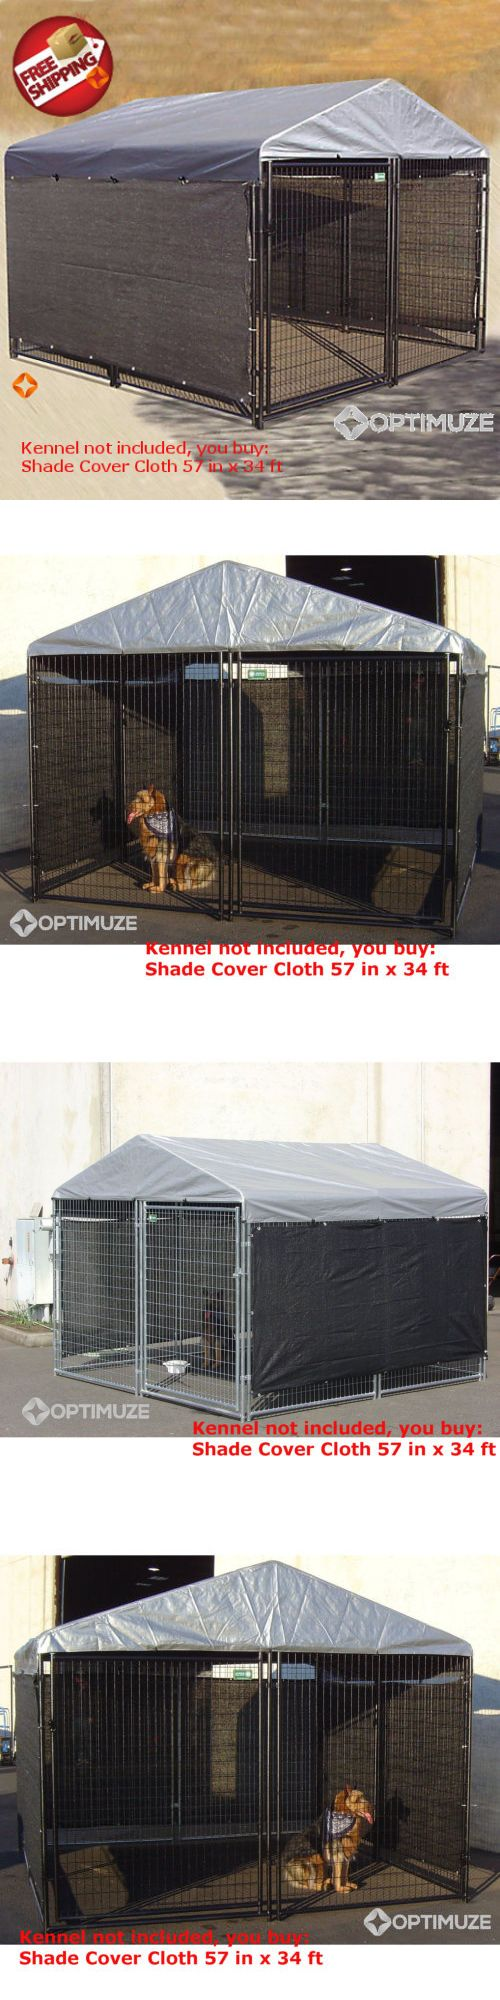 Fences and Exercise Pens 20748: Heavy Duty Dog Cat Cage House Kennel Cover Pet Outdoor Shelter Shade Play 57X34 -> BUY IT NOW ONLY: $109.81 on eBay!